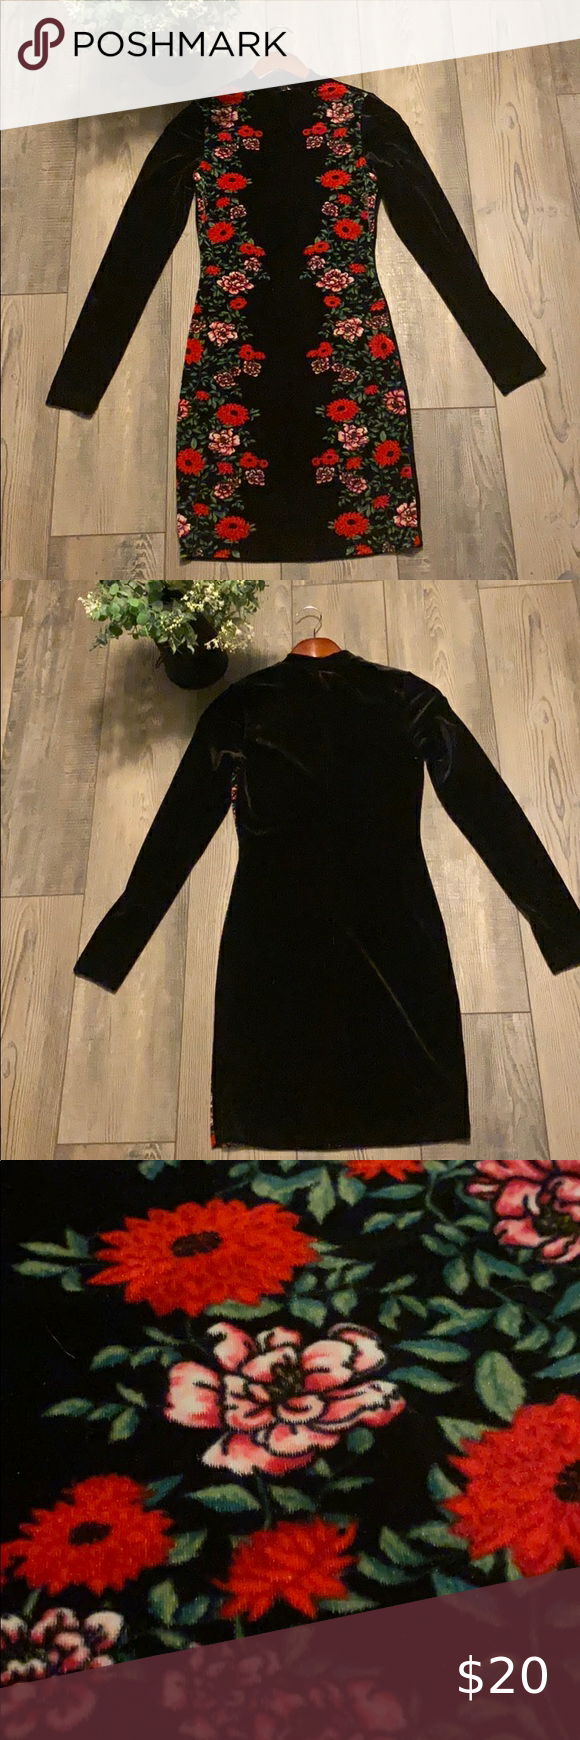 Velvet Black Dress With Flowers Velvet Texture Front And Back Red Flowers Only On Front 92 Polyester O Black Flower Dress Black Velvet Dress Flower Dresses [ 1740 x 580 Pixel ]